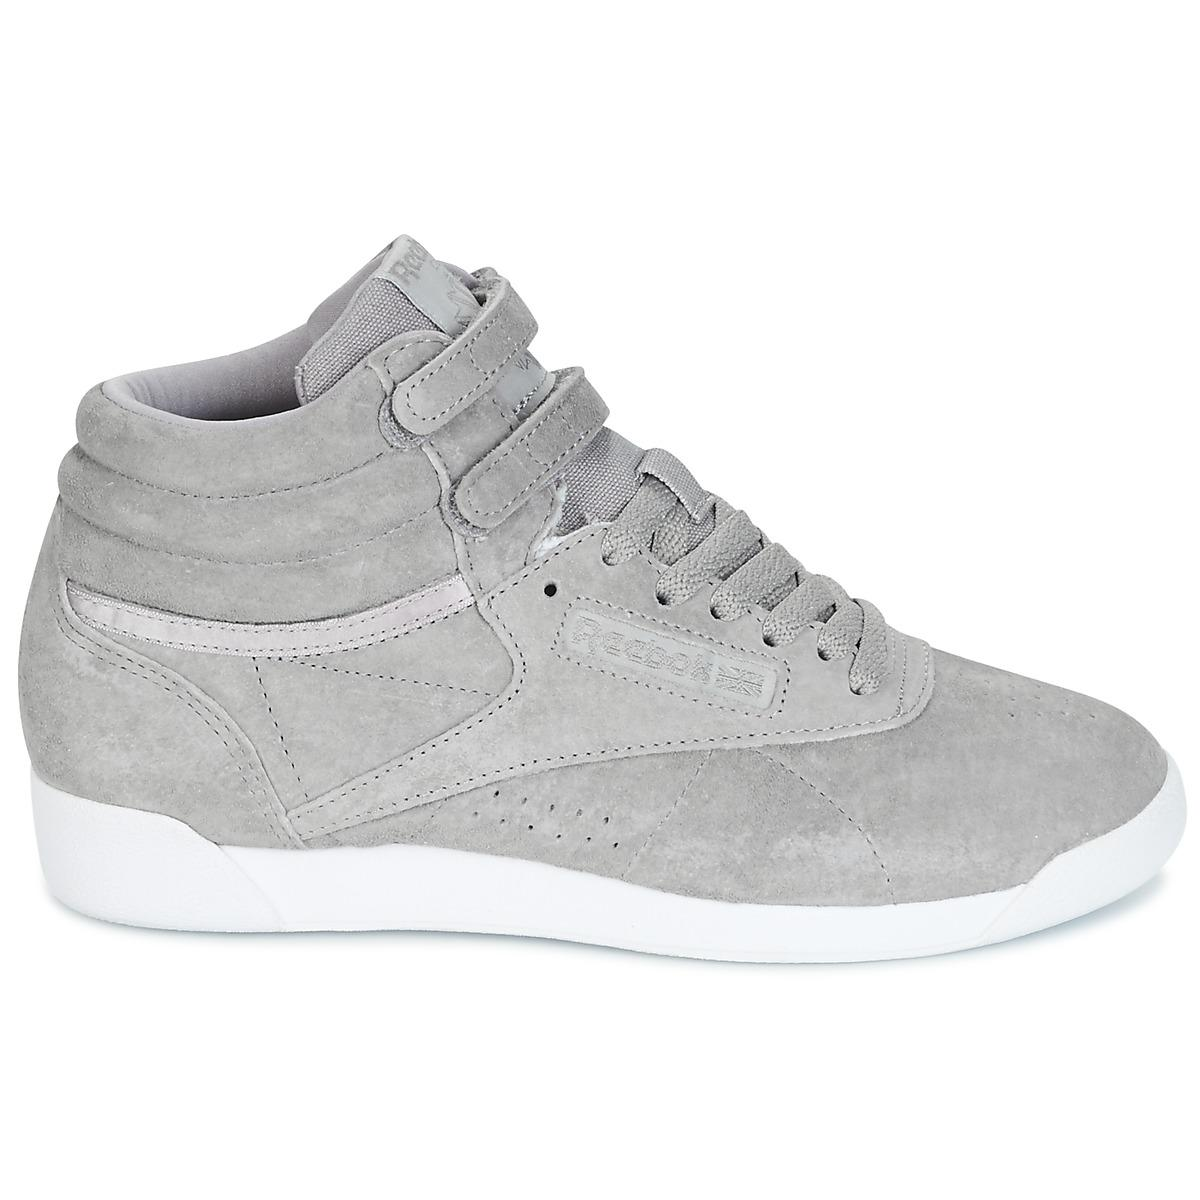 2c4950f35be Reebok F s Hi Nbk Shoes (high-top Trainers) in Gray - Lyst